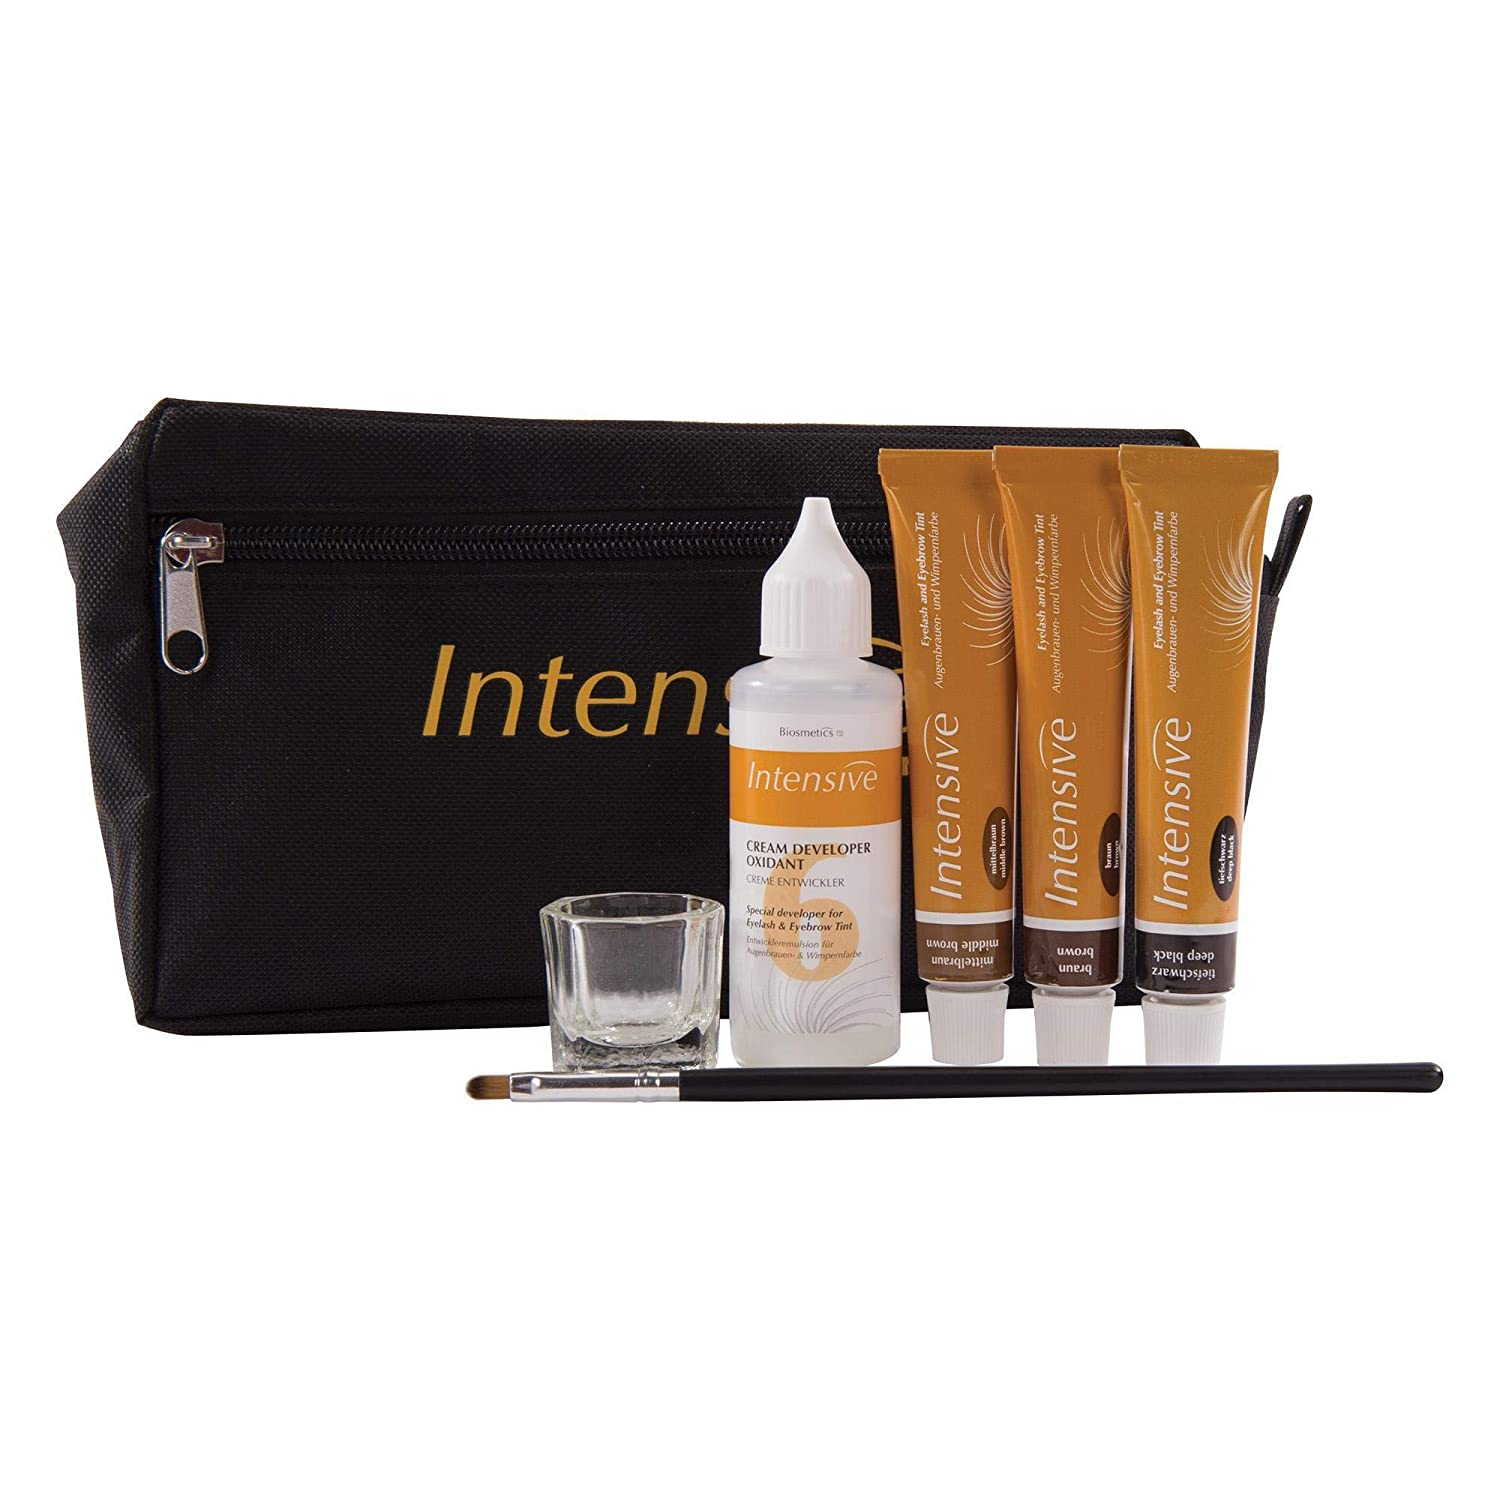 Intensive Lash & Brow Tinting Starter Kit | Trusted Professional Formula | Provides 90 Services